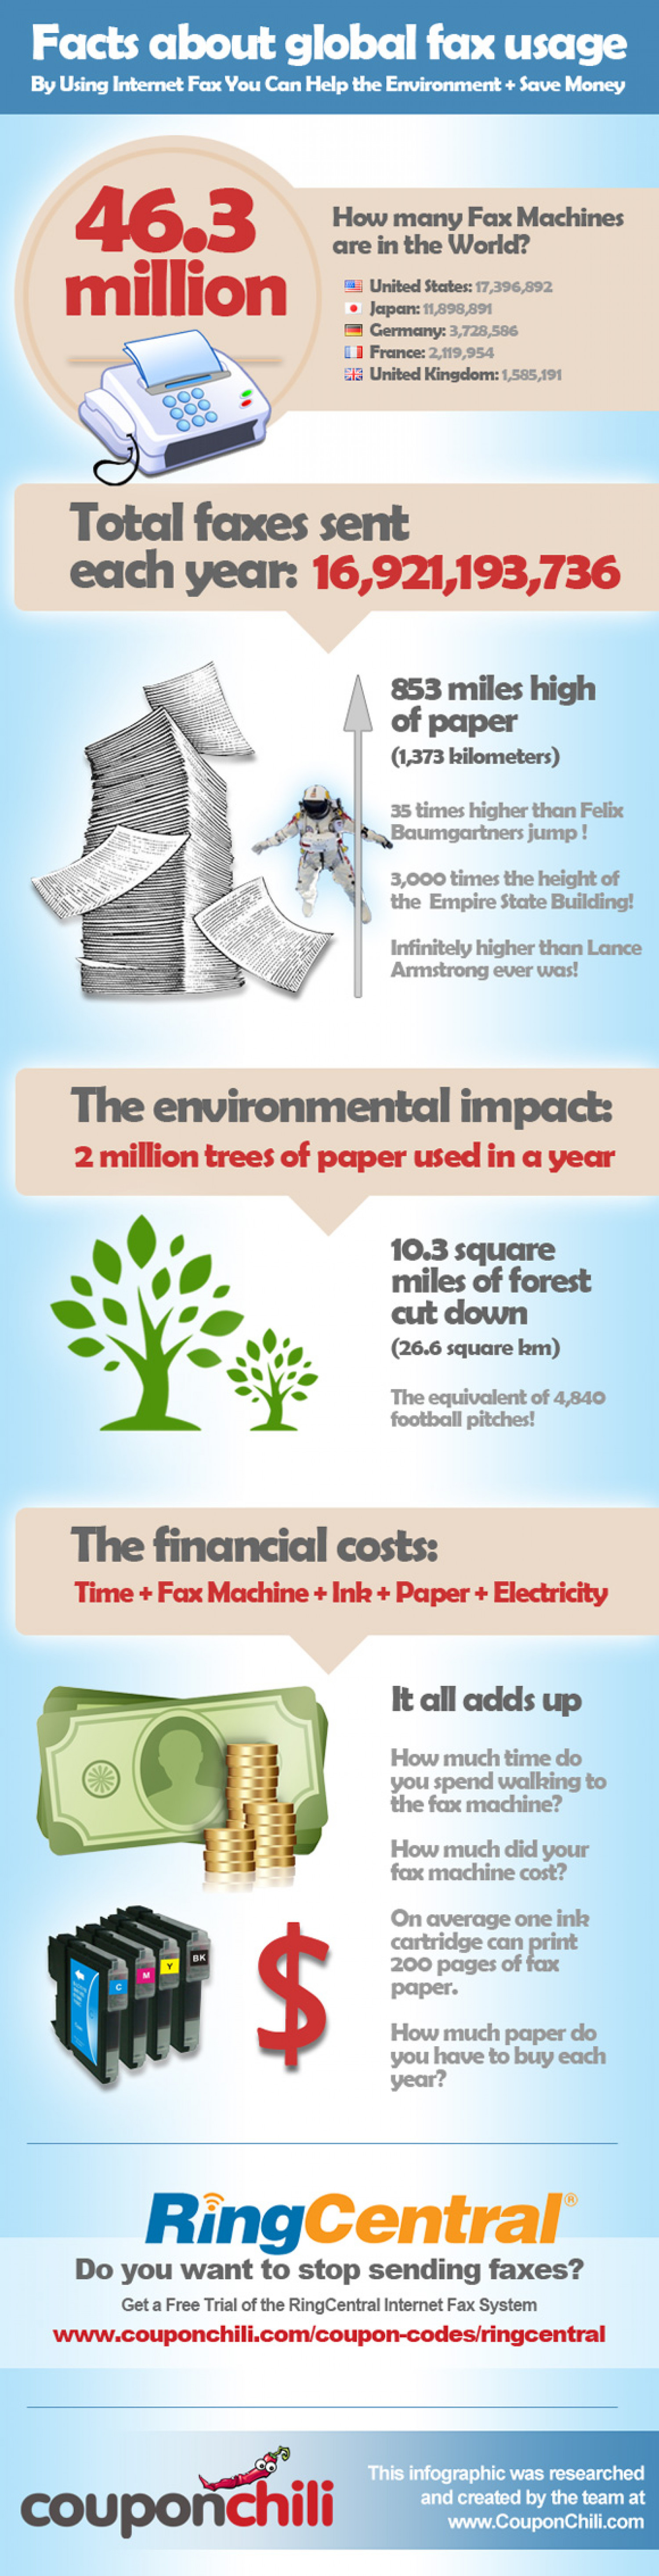 Facts About Global Fax Usage Infographic